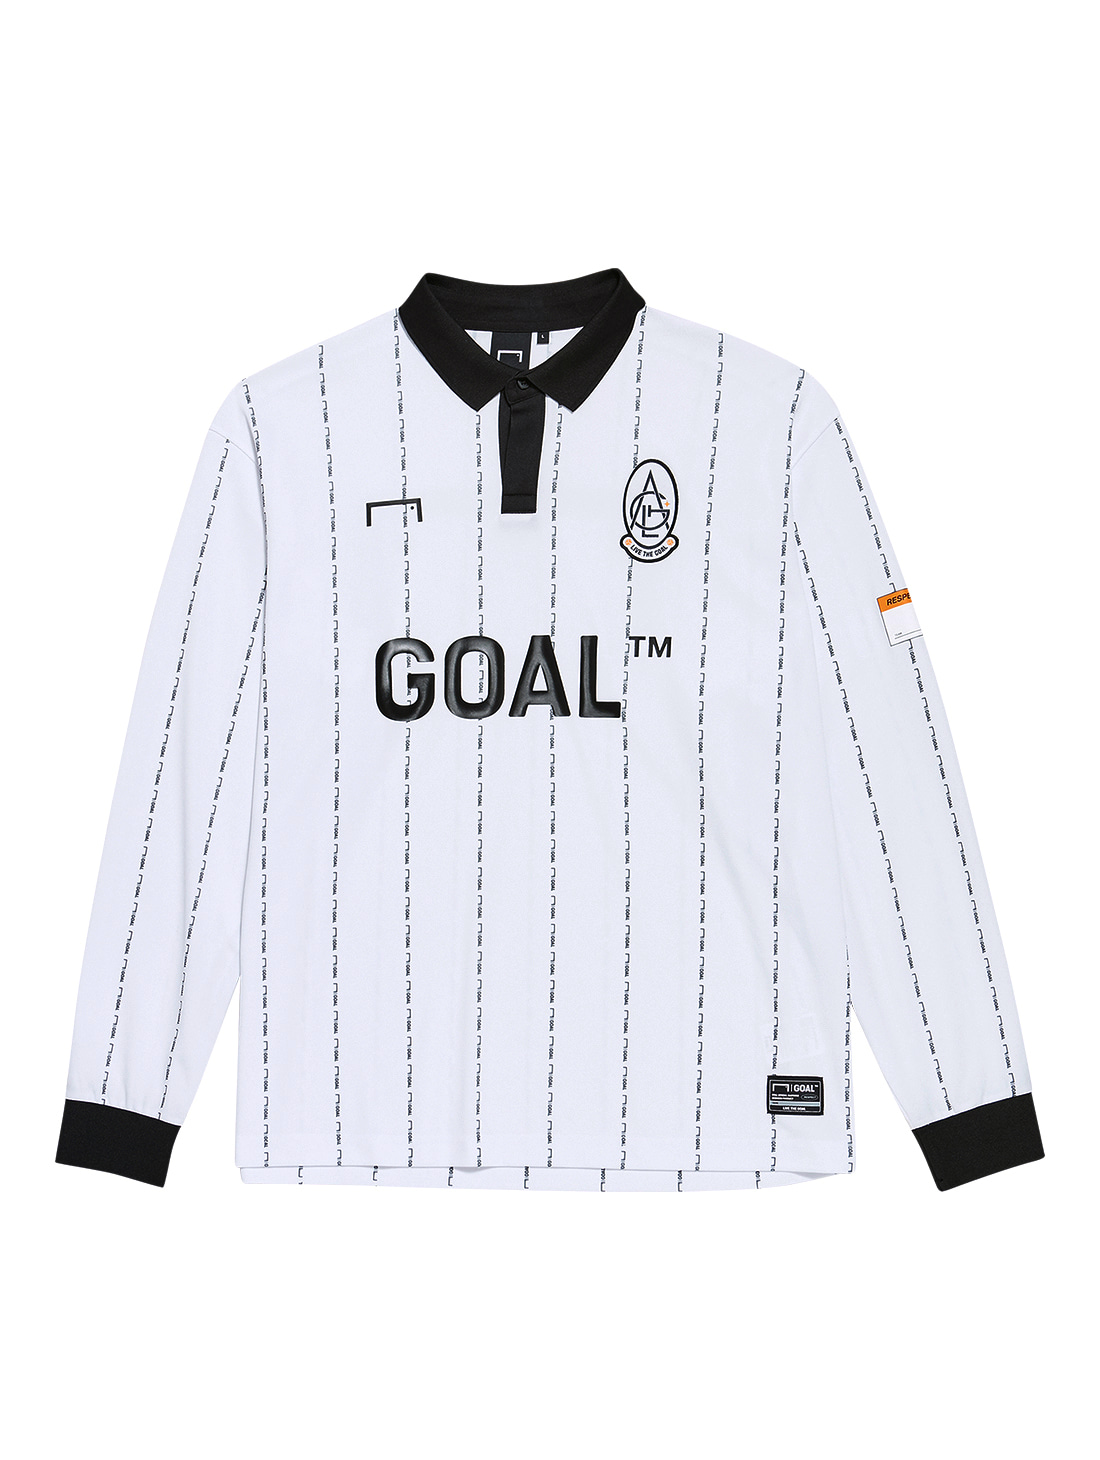 GOALSTUDIO PLAYER EMBLEM JERSEY - WHITE